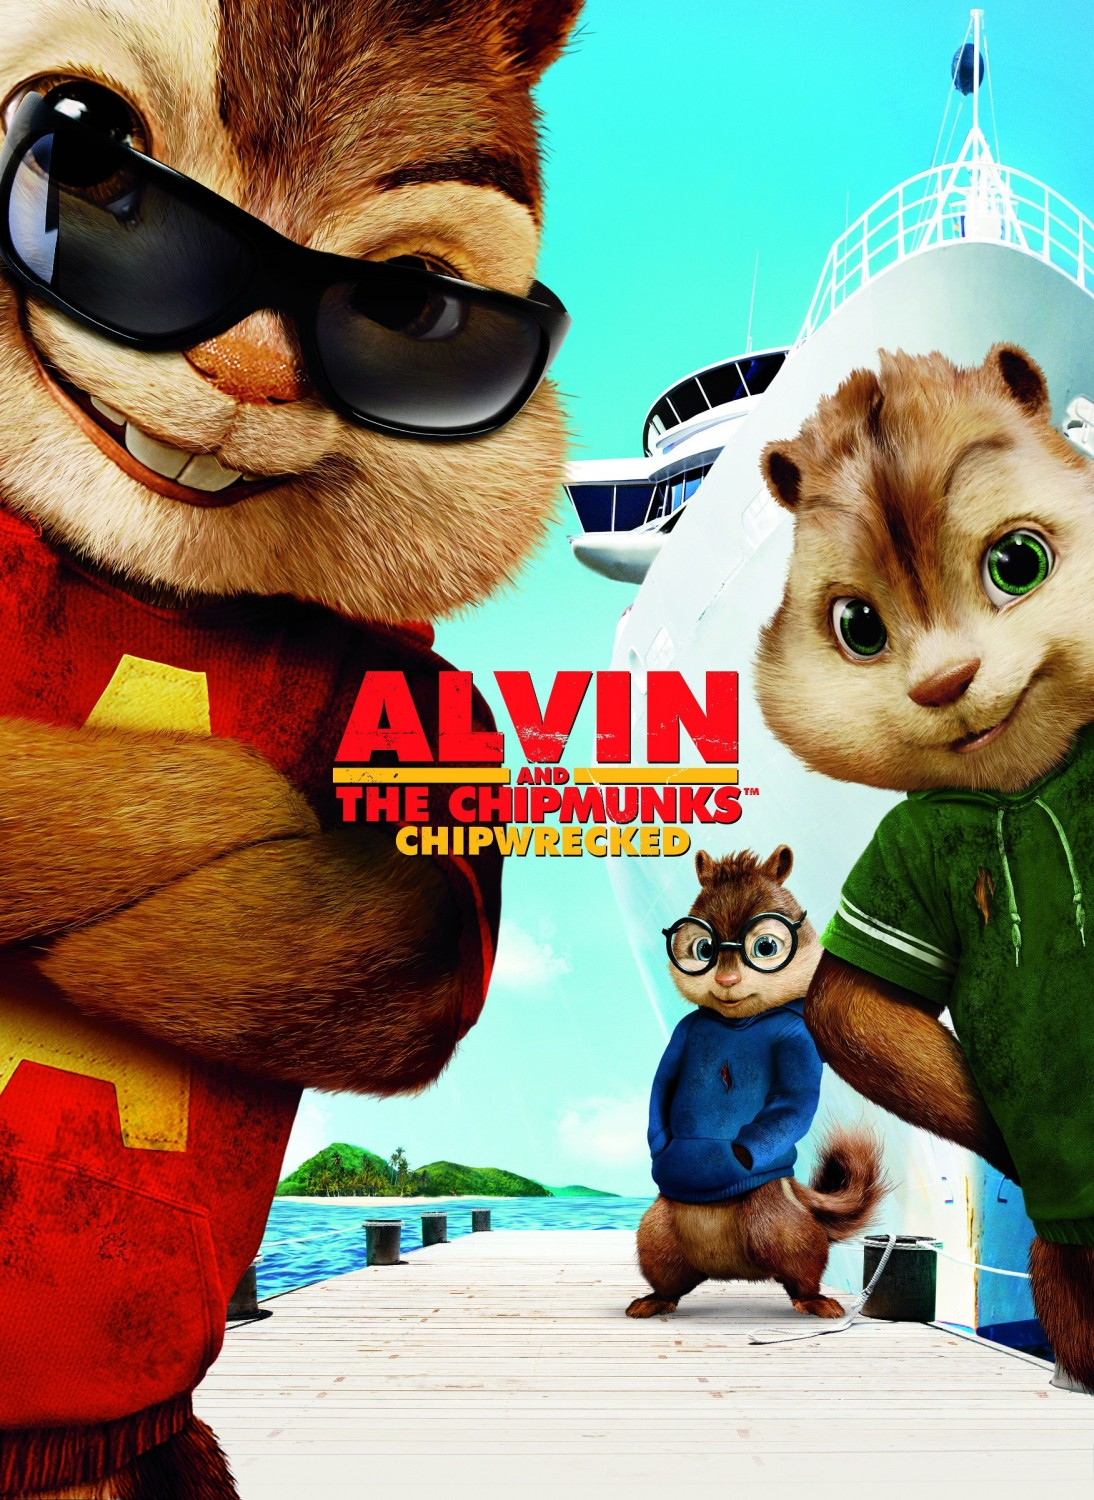 Alvin And The Chipmunks Chipwrecked The Scorecard Review